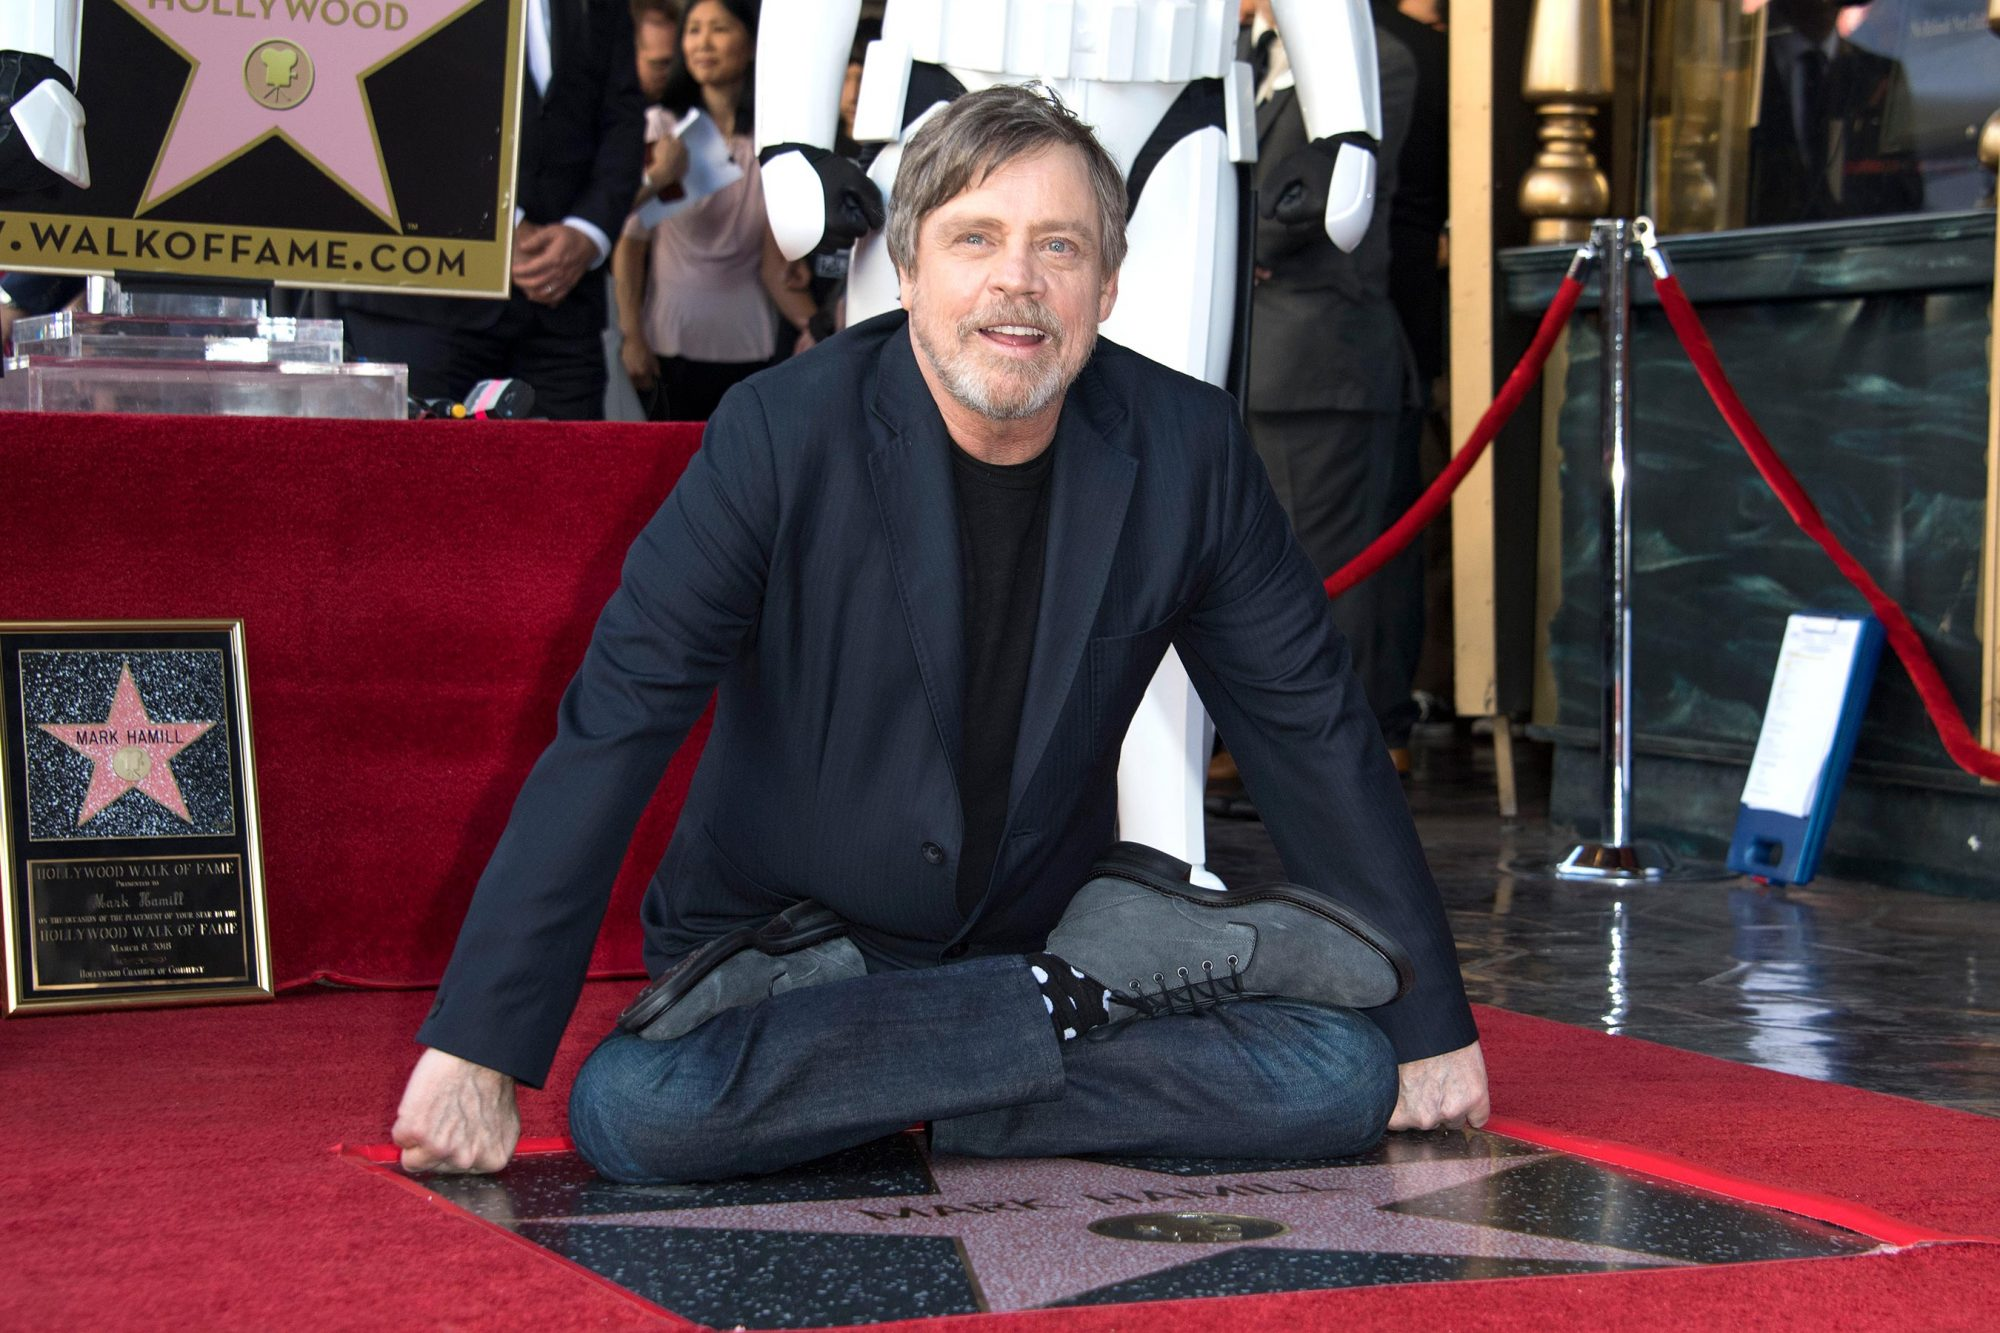 US-ENTERTAINMENT-HWOF-HAMILL-film